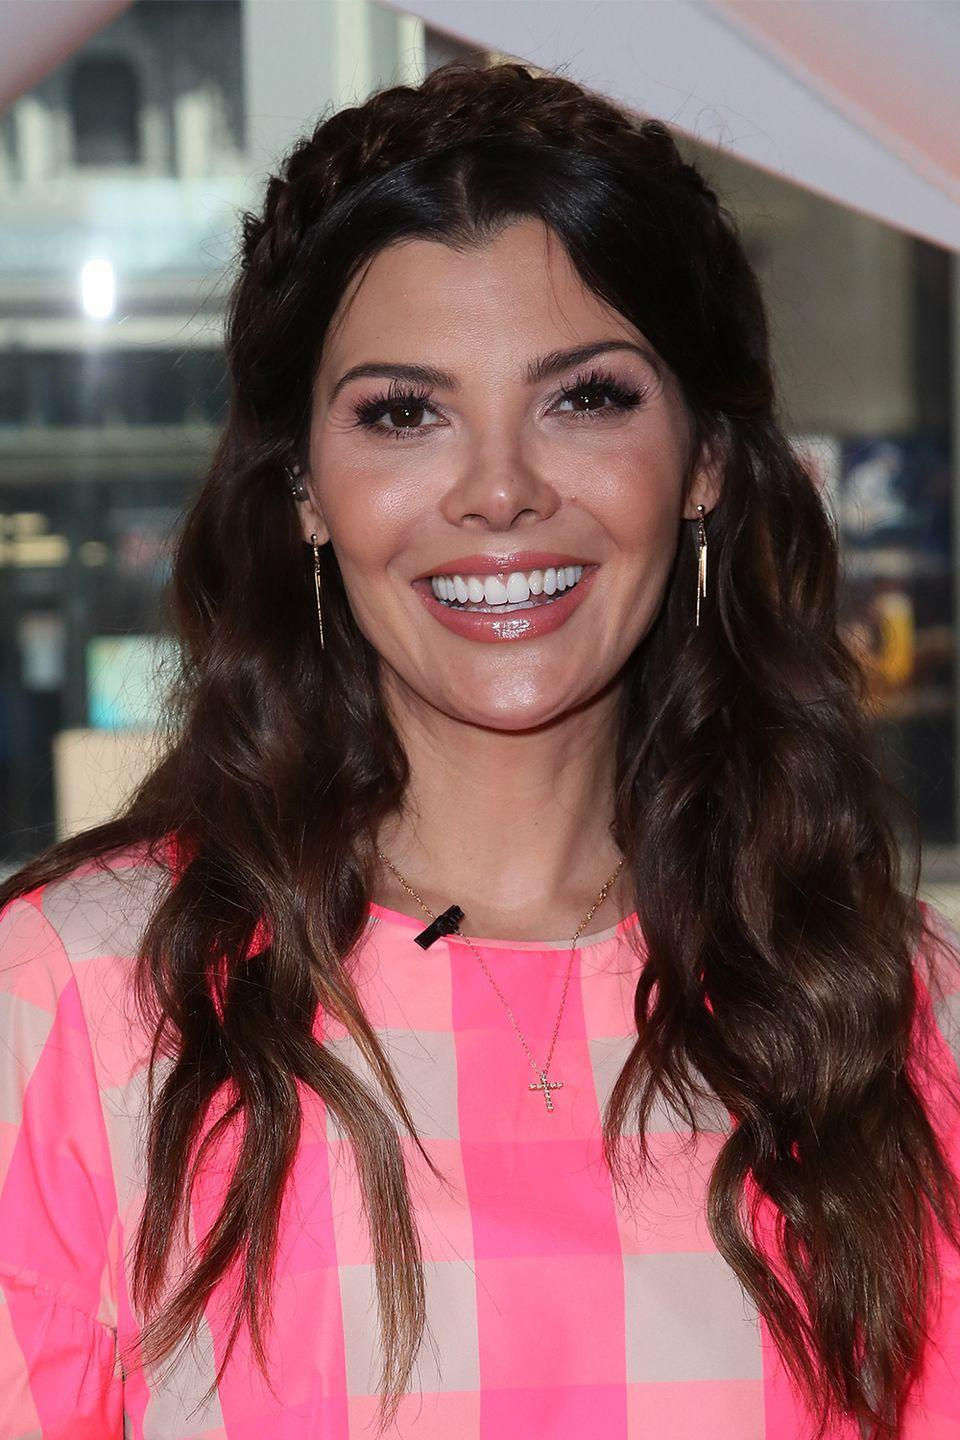 """<p>Ali Landry—who was previously married to Mario Lopez—wanted to be extra careful in her relationship with Alejandro Monteverde, who became her second husband in 2006. </p><p>""""I was just treading lightly, and did not want to make any mistakes in this relationship,"""" she said on <em><a href=""""https://www.thehollywoodgossip.com/videos/ali-landry-on-wendy-williams-no-sex-until-marriage/"""" rel=""""nofollow noopener"""" target=""""_blank"""" data-ylk=""""slk:The Wendy Williams Show"""" class=""""link rapid-noclick-resp"""">The Wendy Williams Show</a></em>. """"We abstained from having sex until we got married.""""</p>"""